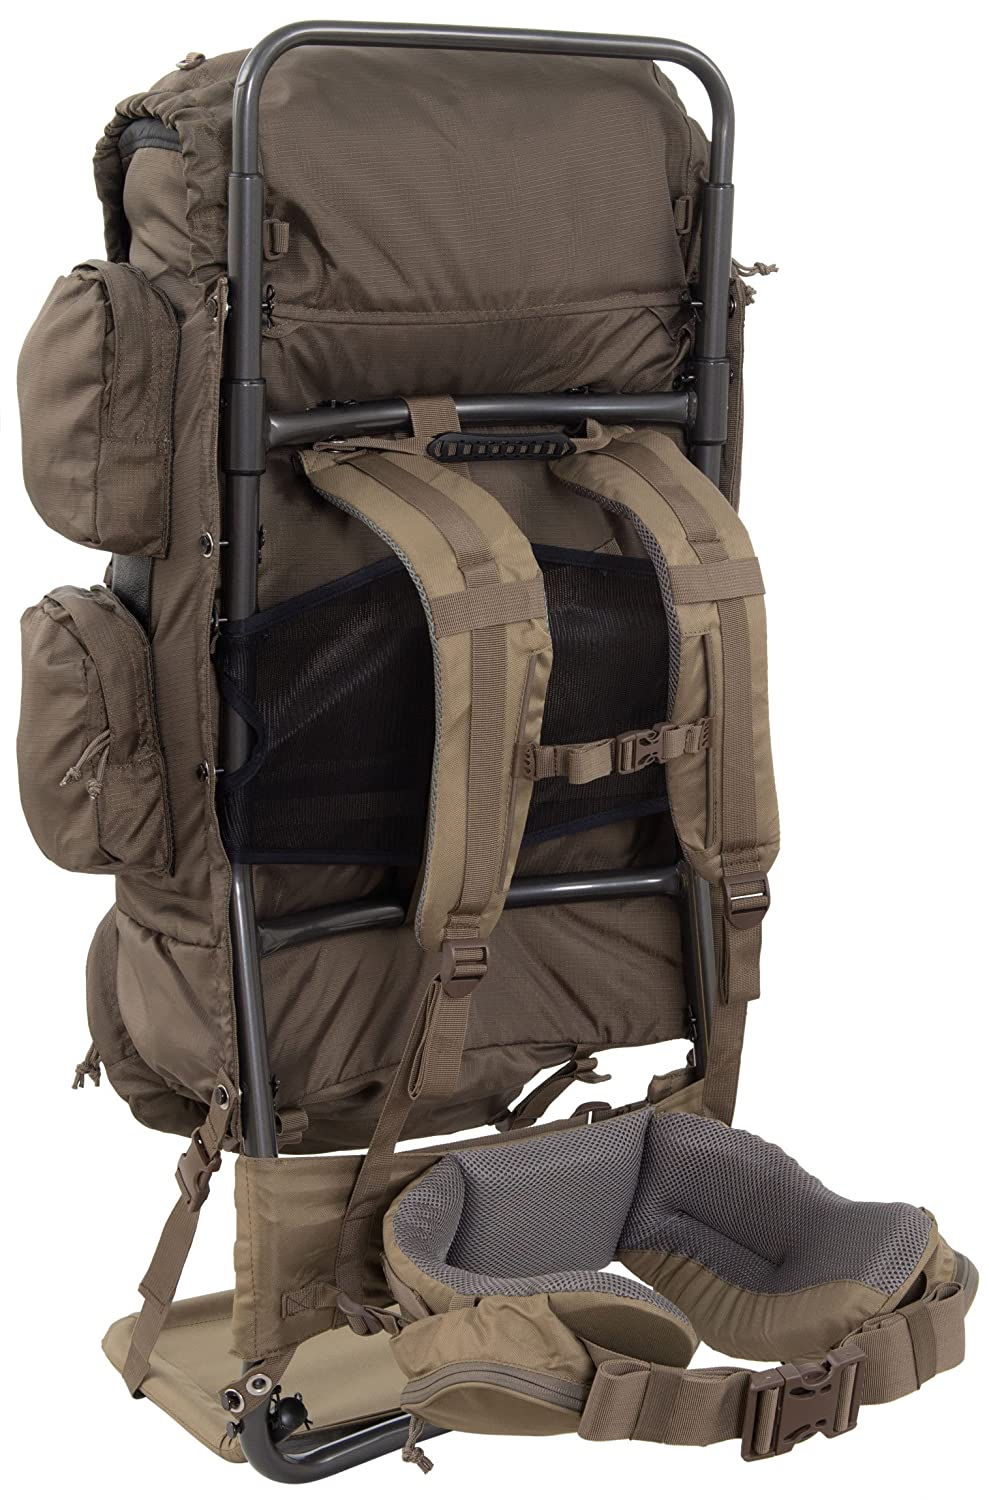 Amazon.com : ALPS OutdoorZ Commander + Pack Bag : External Frame ...